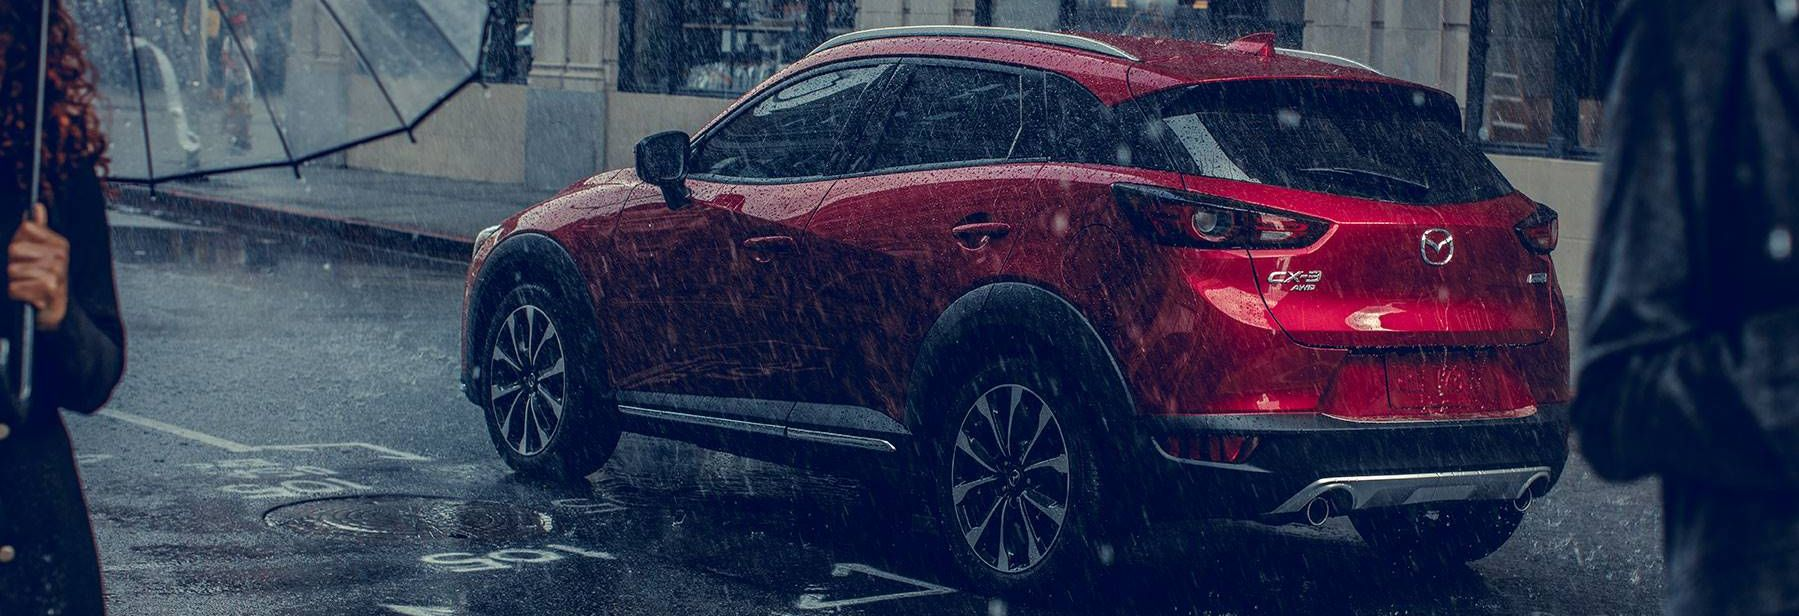 2019 Mazda CX-3 for Sale near Tempe, AZ